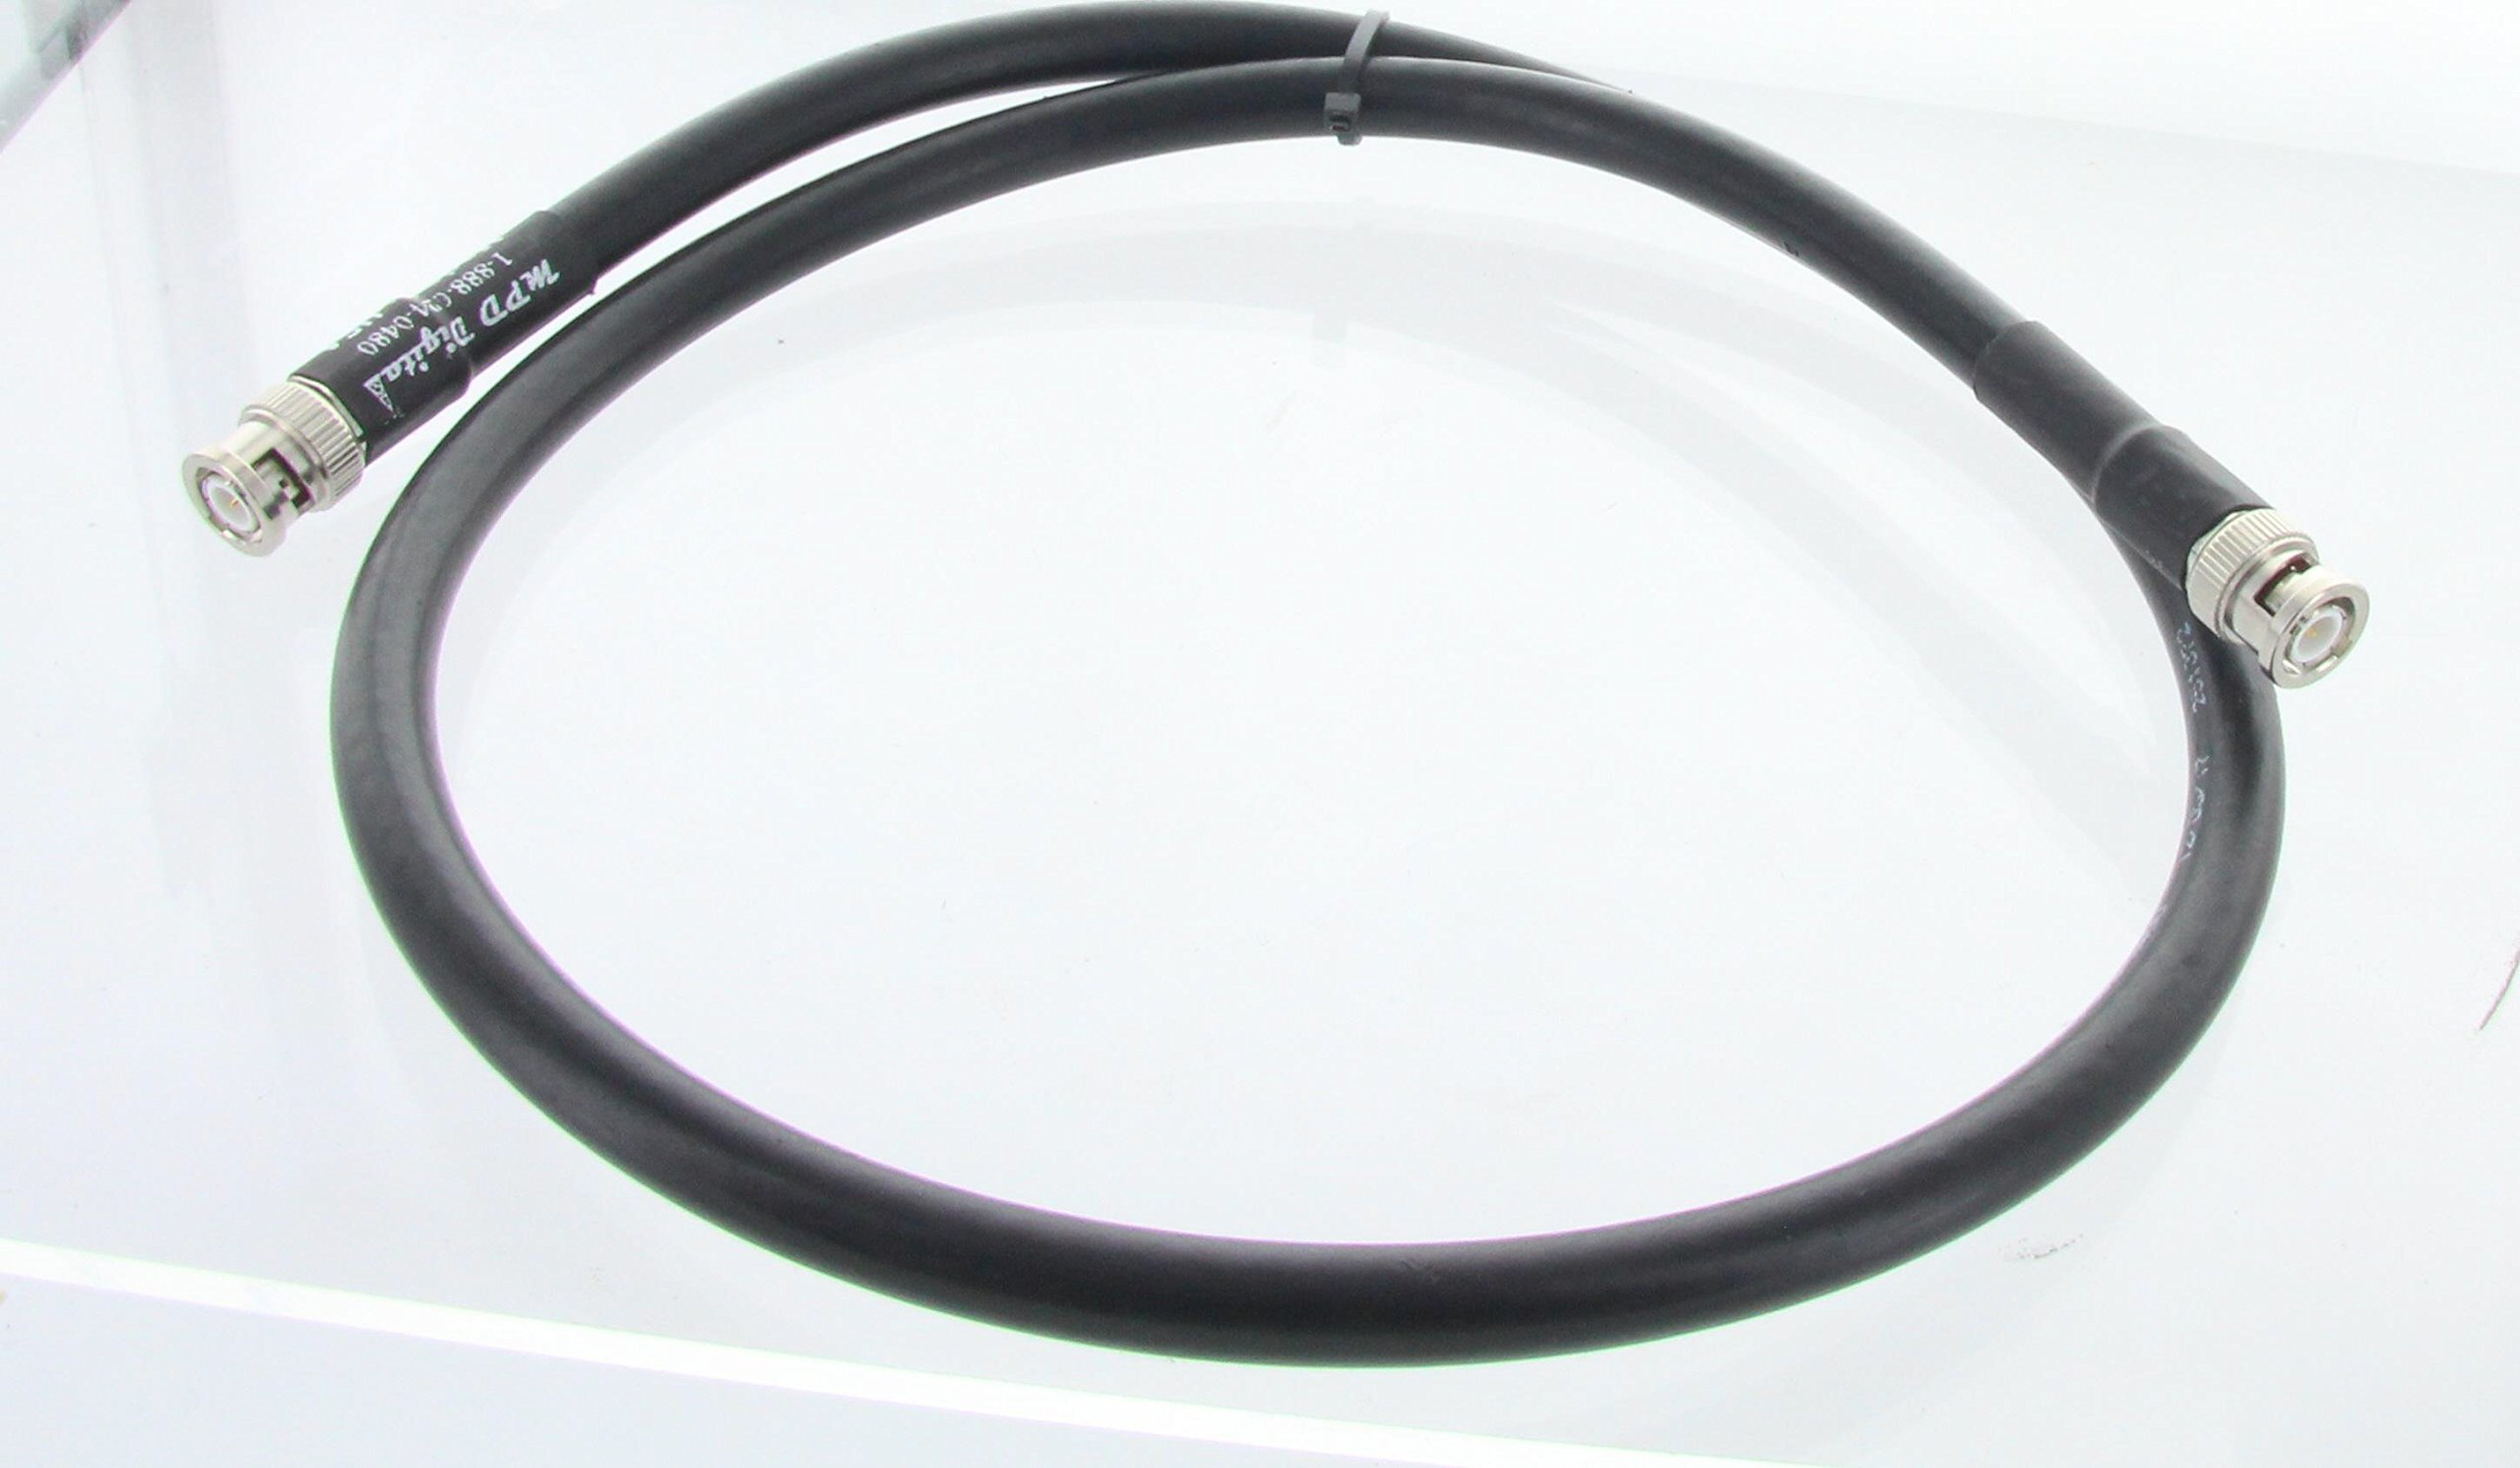 MPD Digital Genuine LMR 400 Coaxial Cable with BNC Male Connectors, 10 Feet